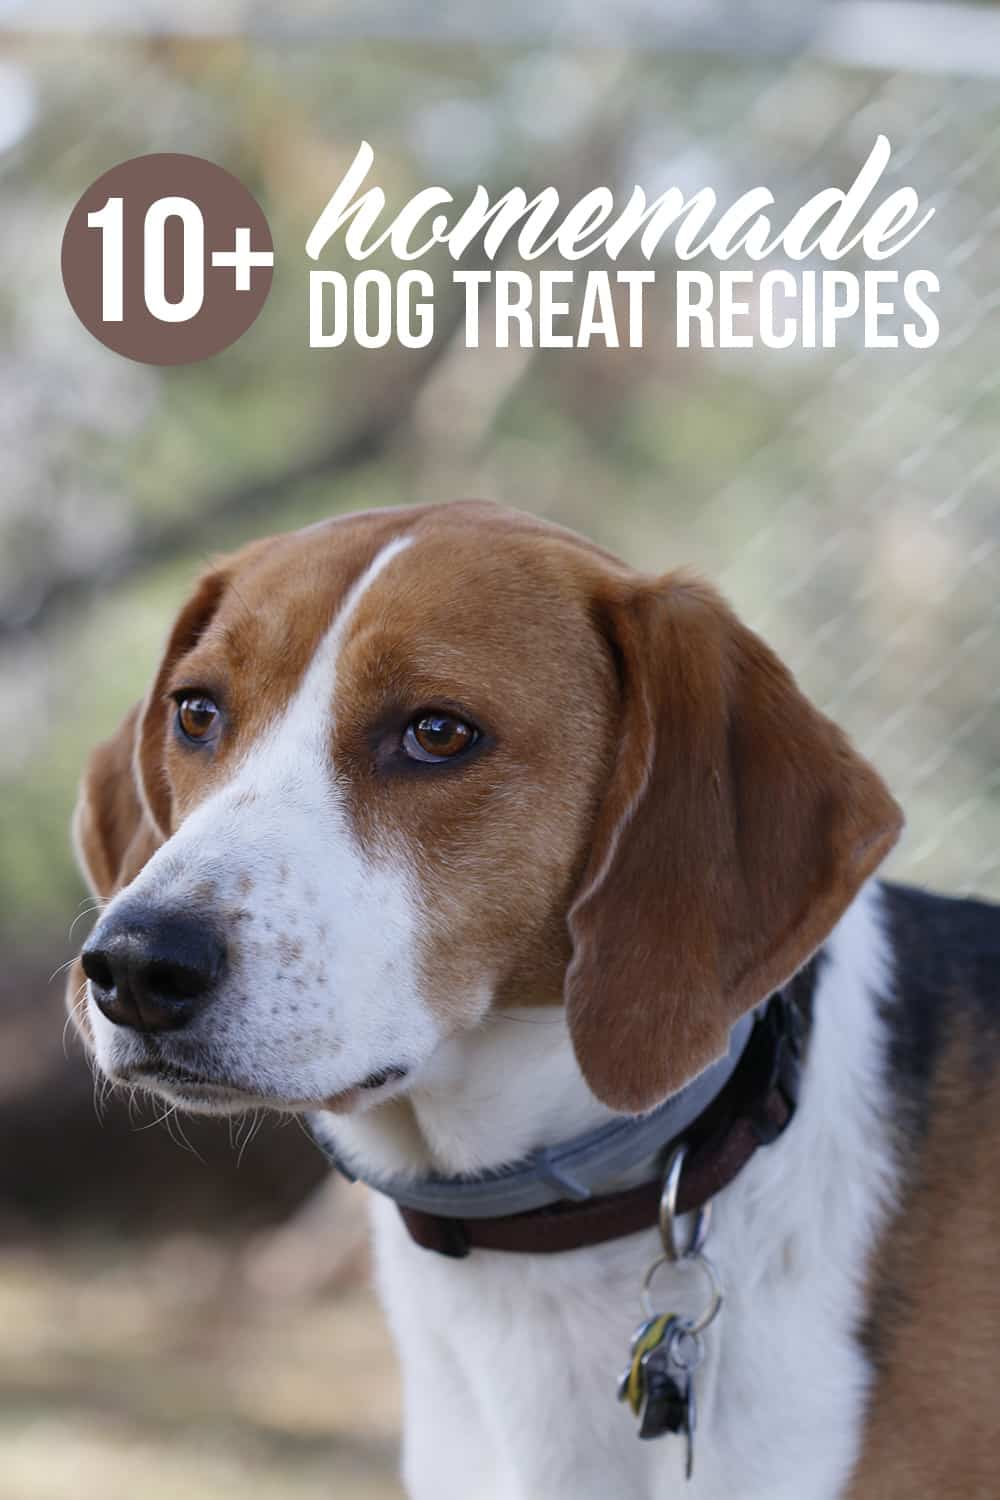 Spoiling your pup just got easier! These easy homemade dog treats are the perfect way to show your best friend how much you love them.